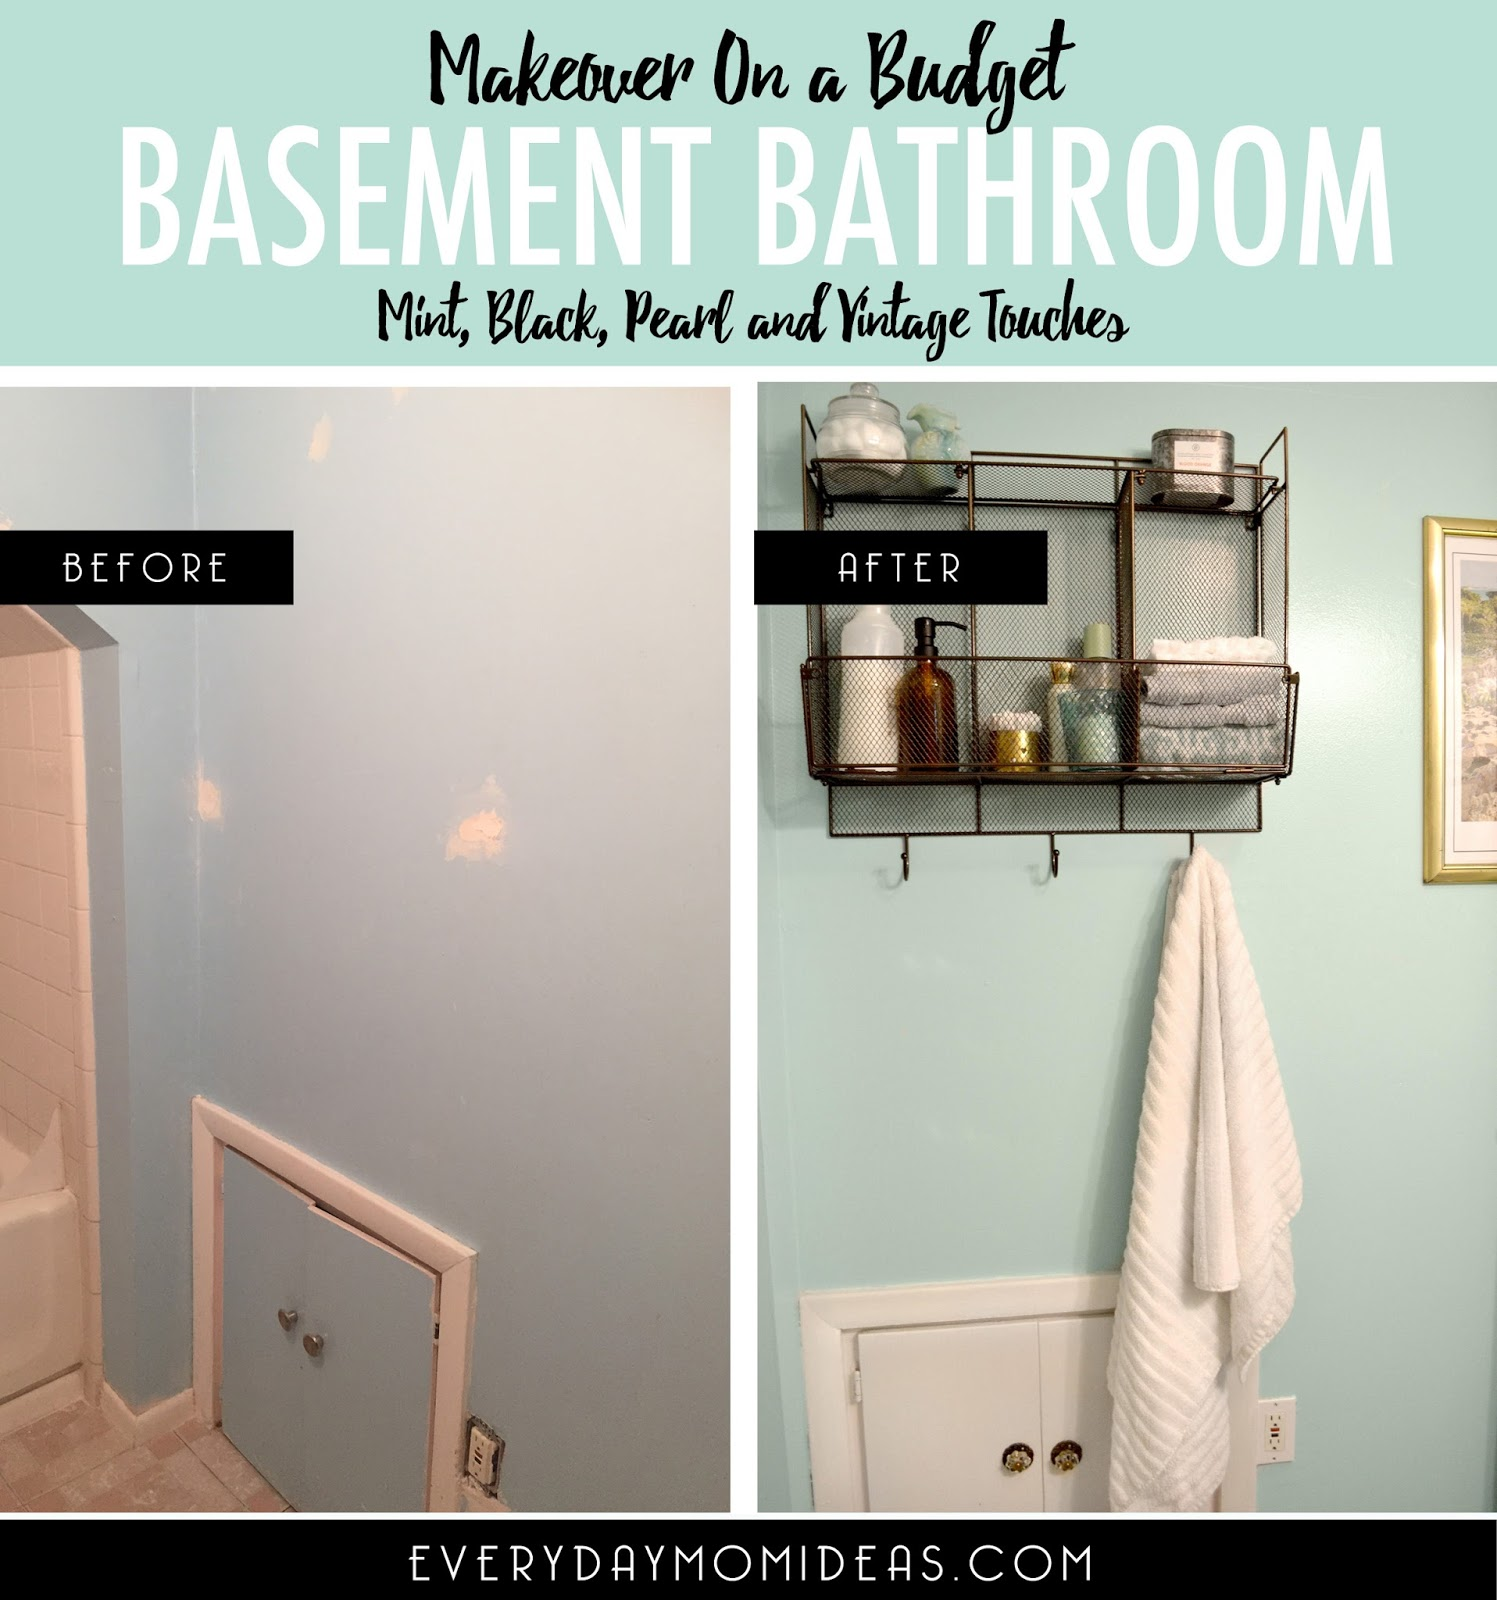 ... Accents Throughout Including The Light Fixture, Towel Holder, Wall  Mounted Storage Rack, Frosted Glass Shelves And Even The Amber Glass Soap  Dispenser.